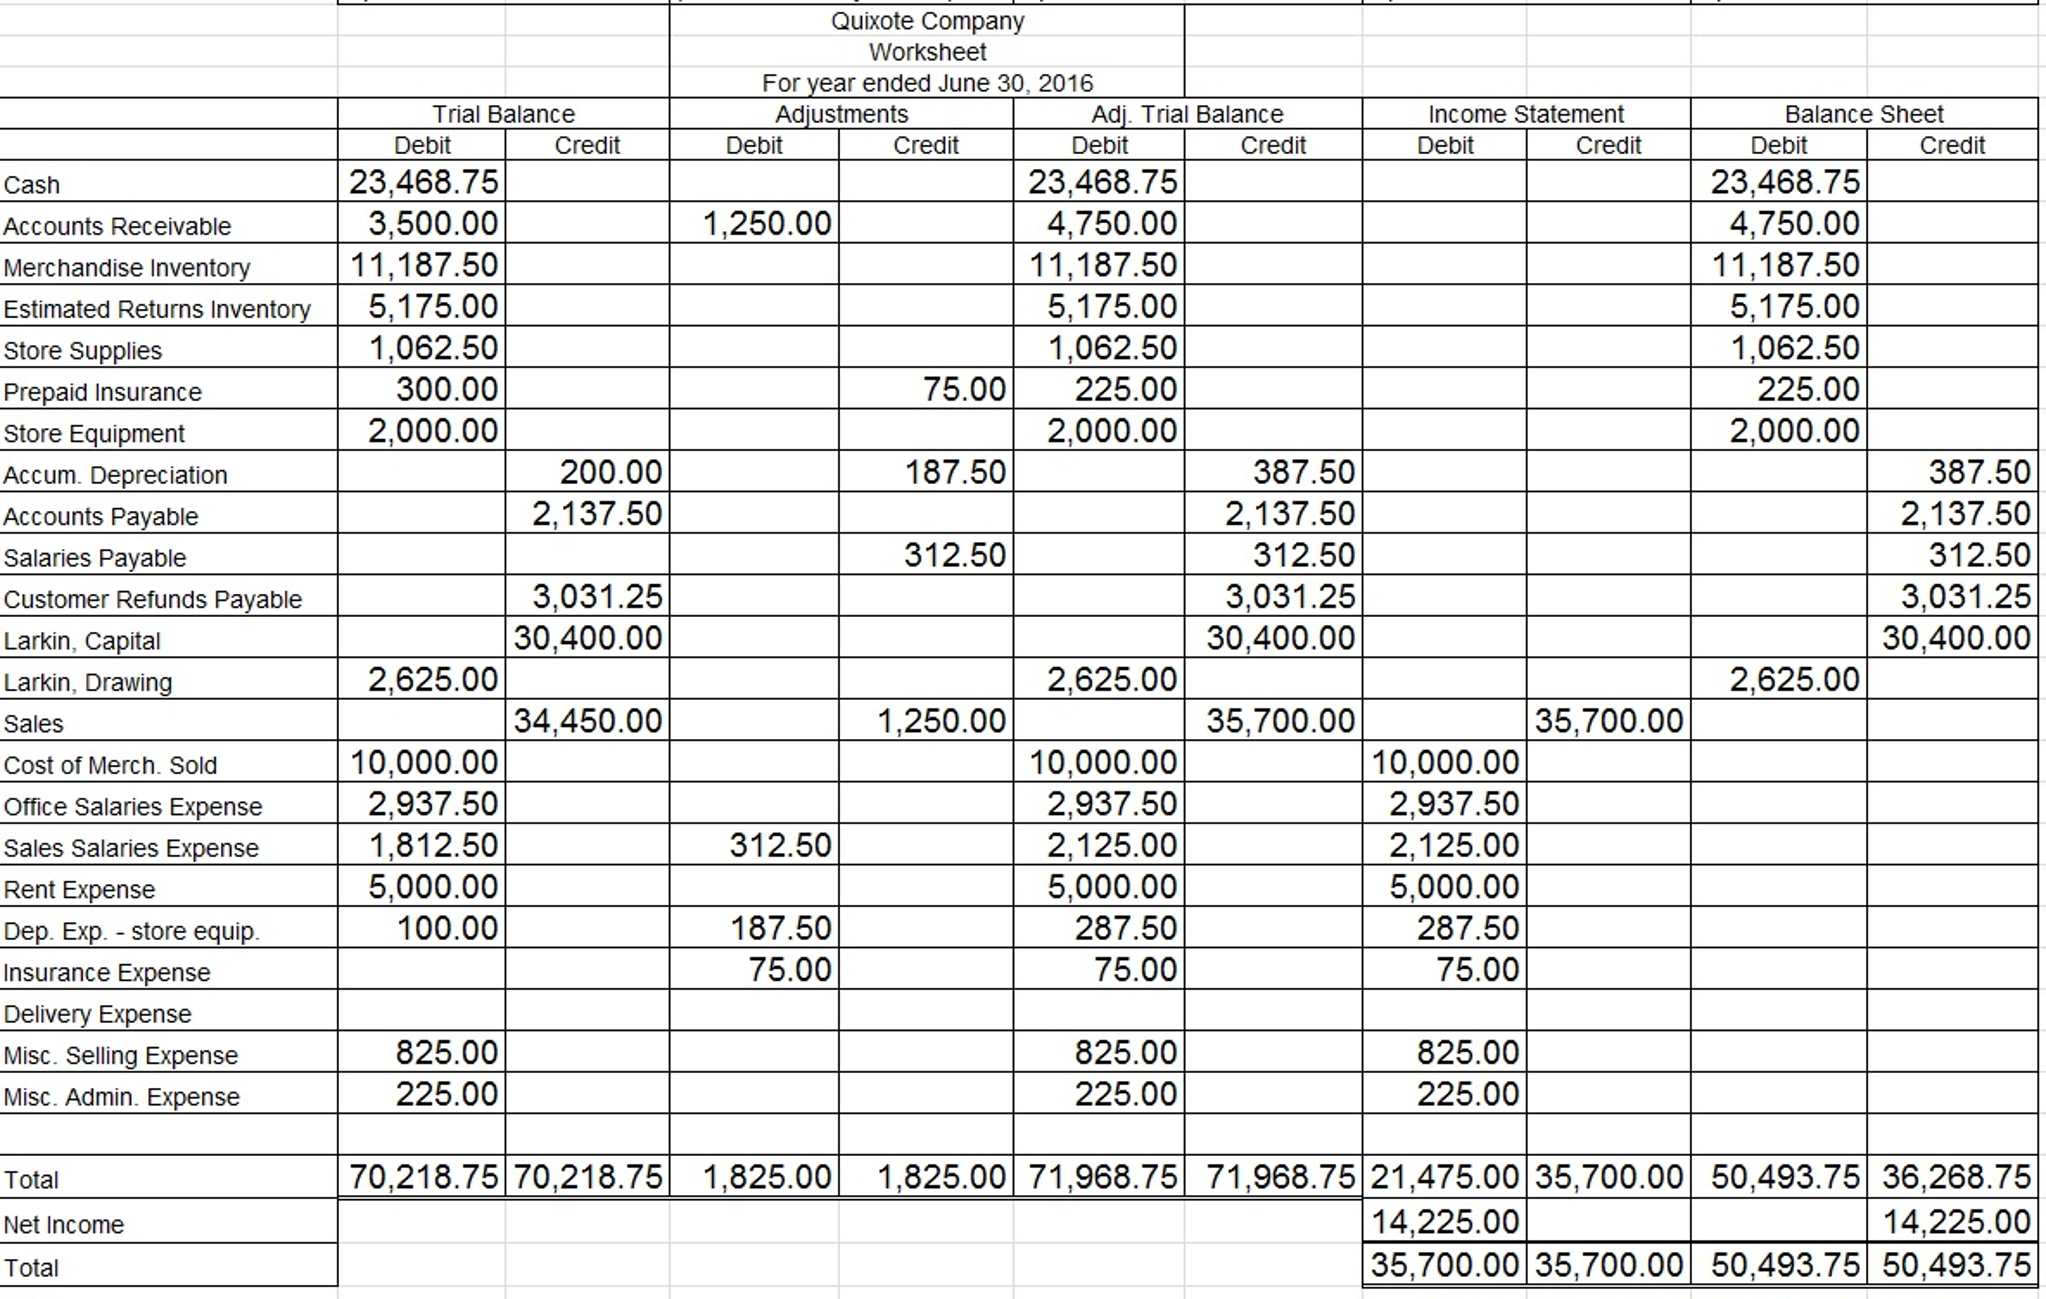 Income Statement Worksheet   Zoro.9Terrains.co Within Income Statement Worksheet